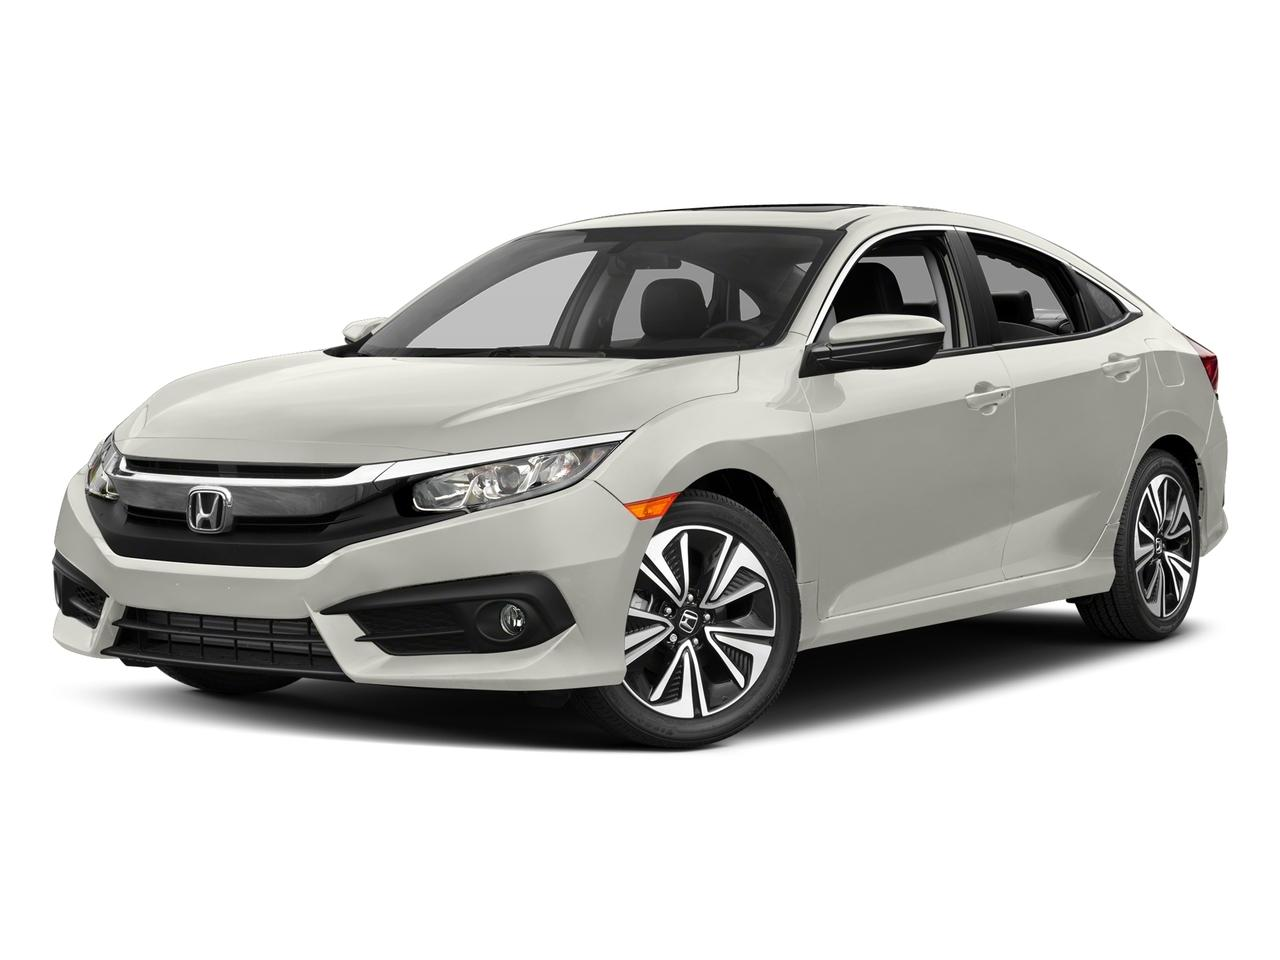 2017 Honda Civic Sedan Vehicle Photo in Owensboro, KY 42302